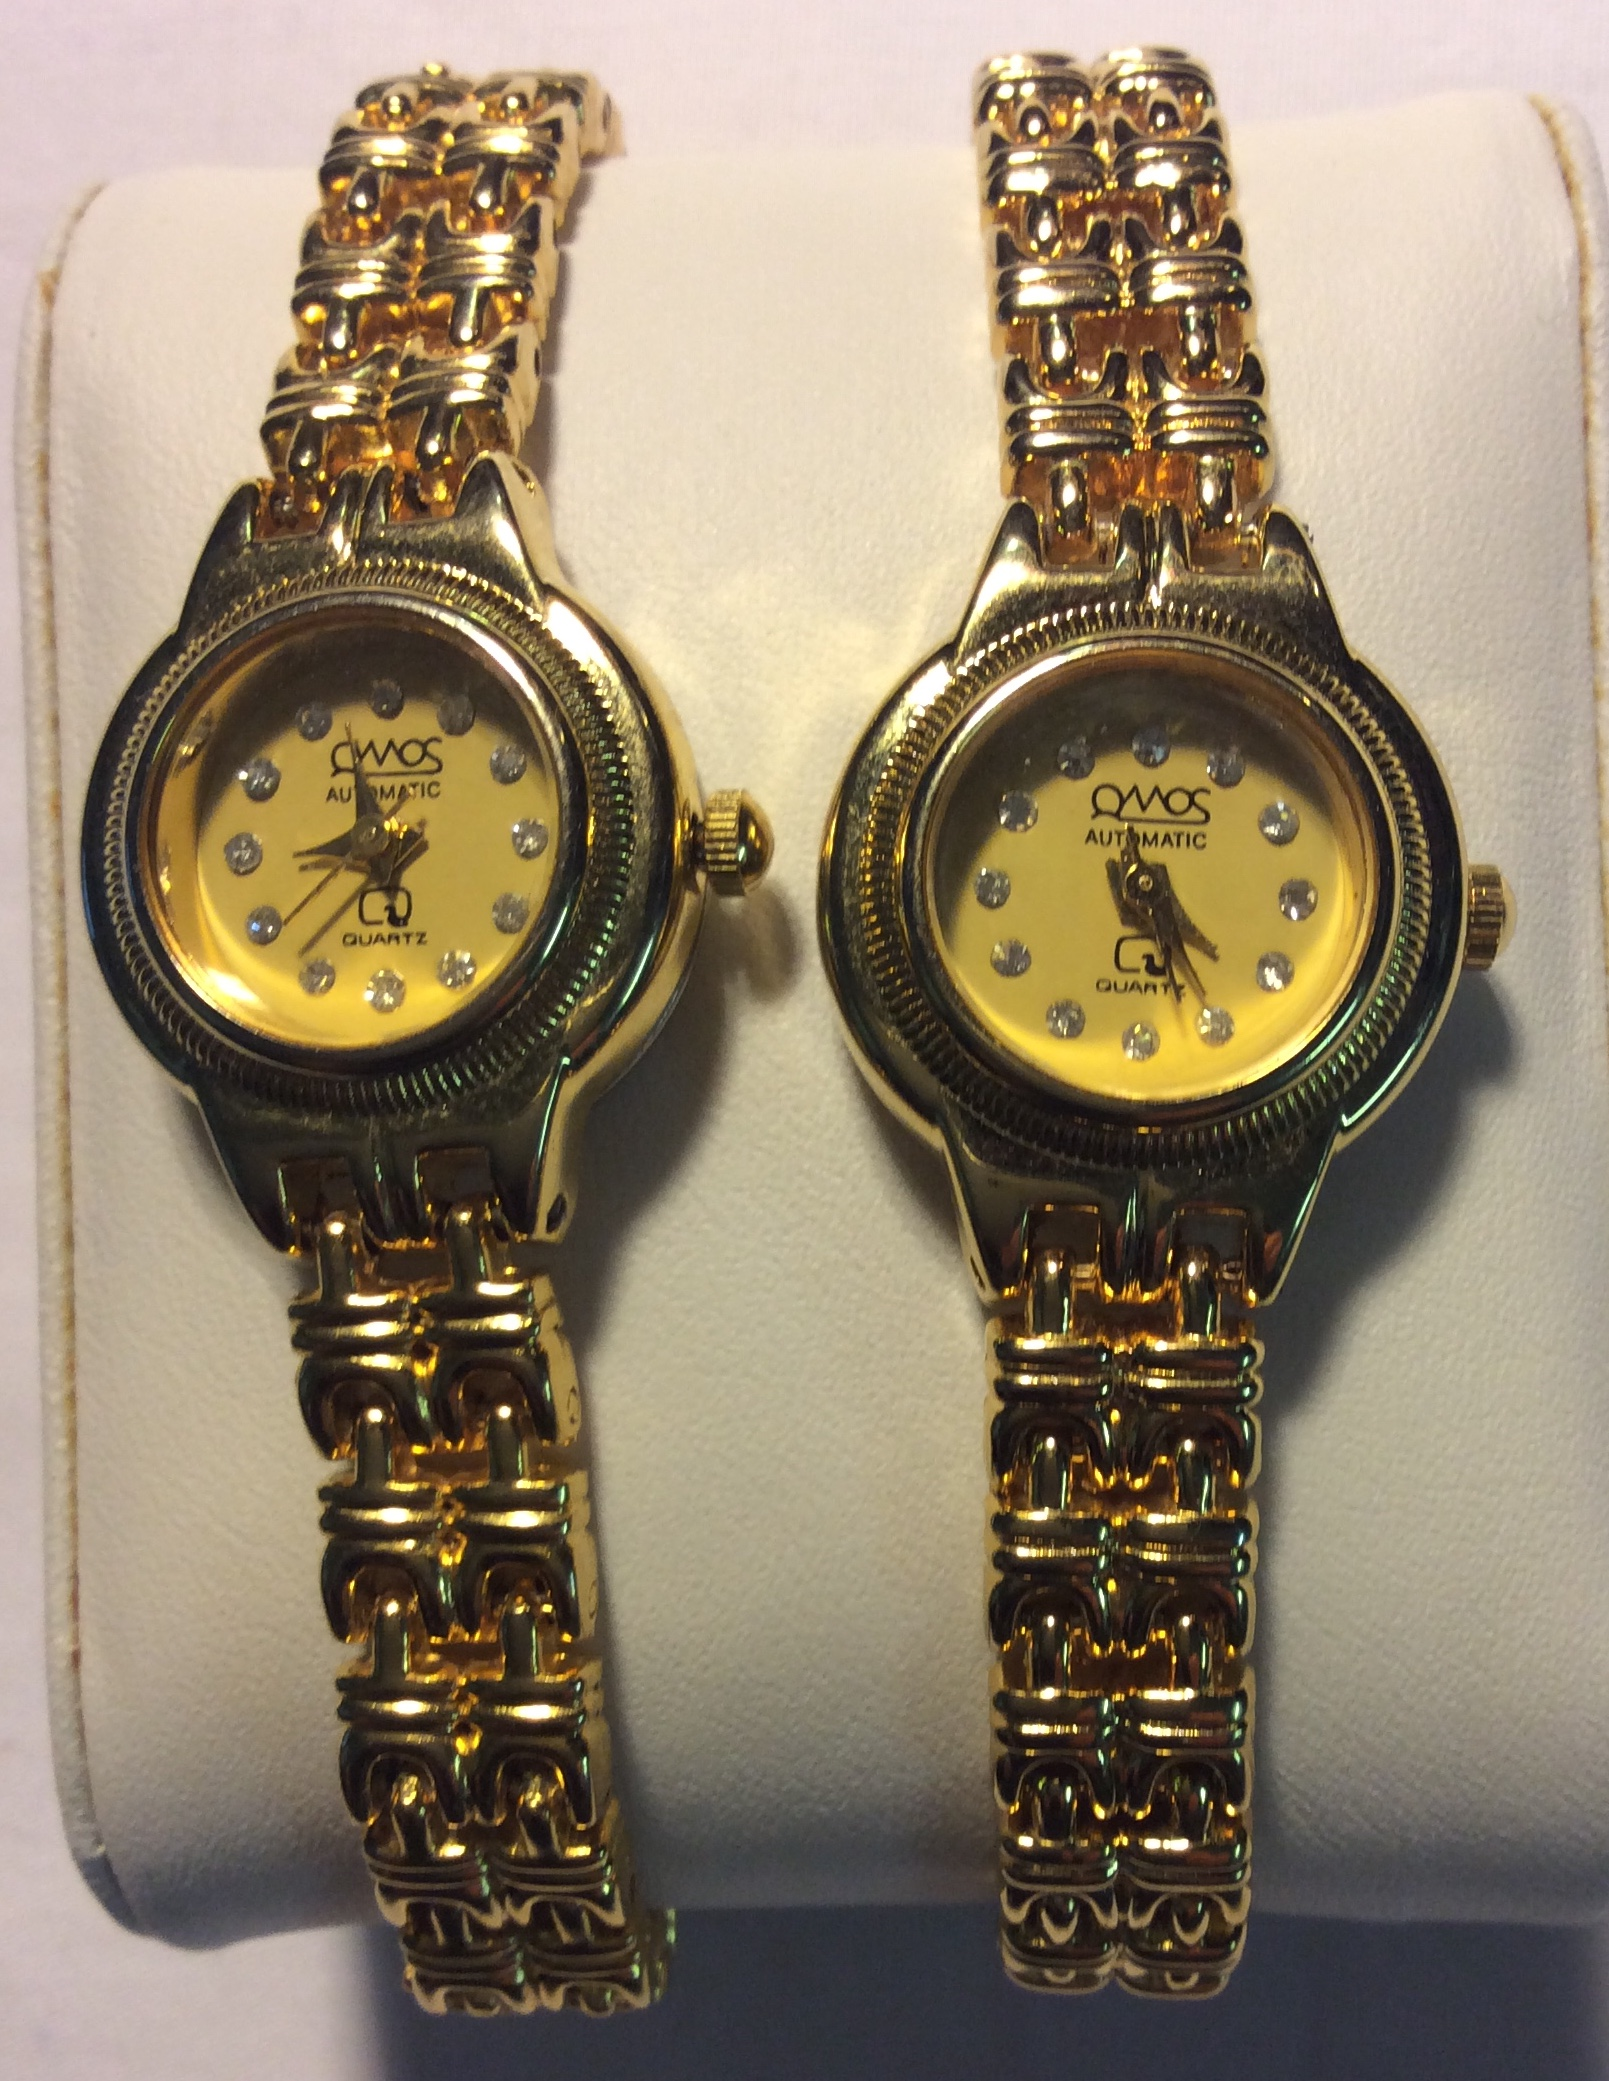 Qiomos watch - round gold face